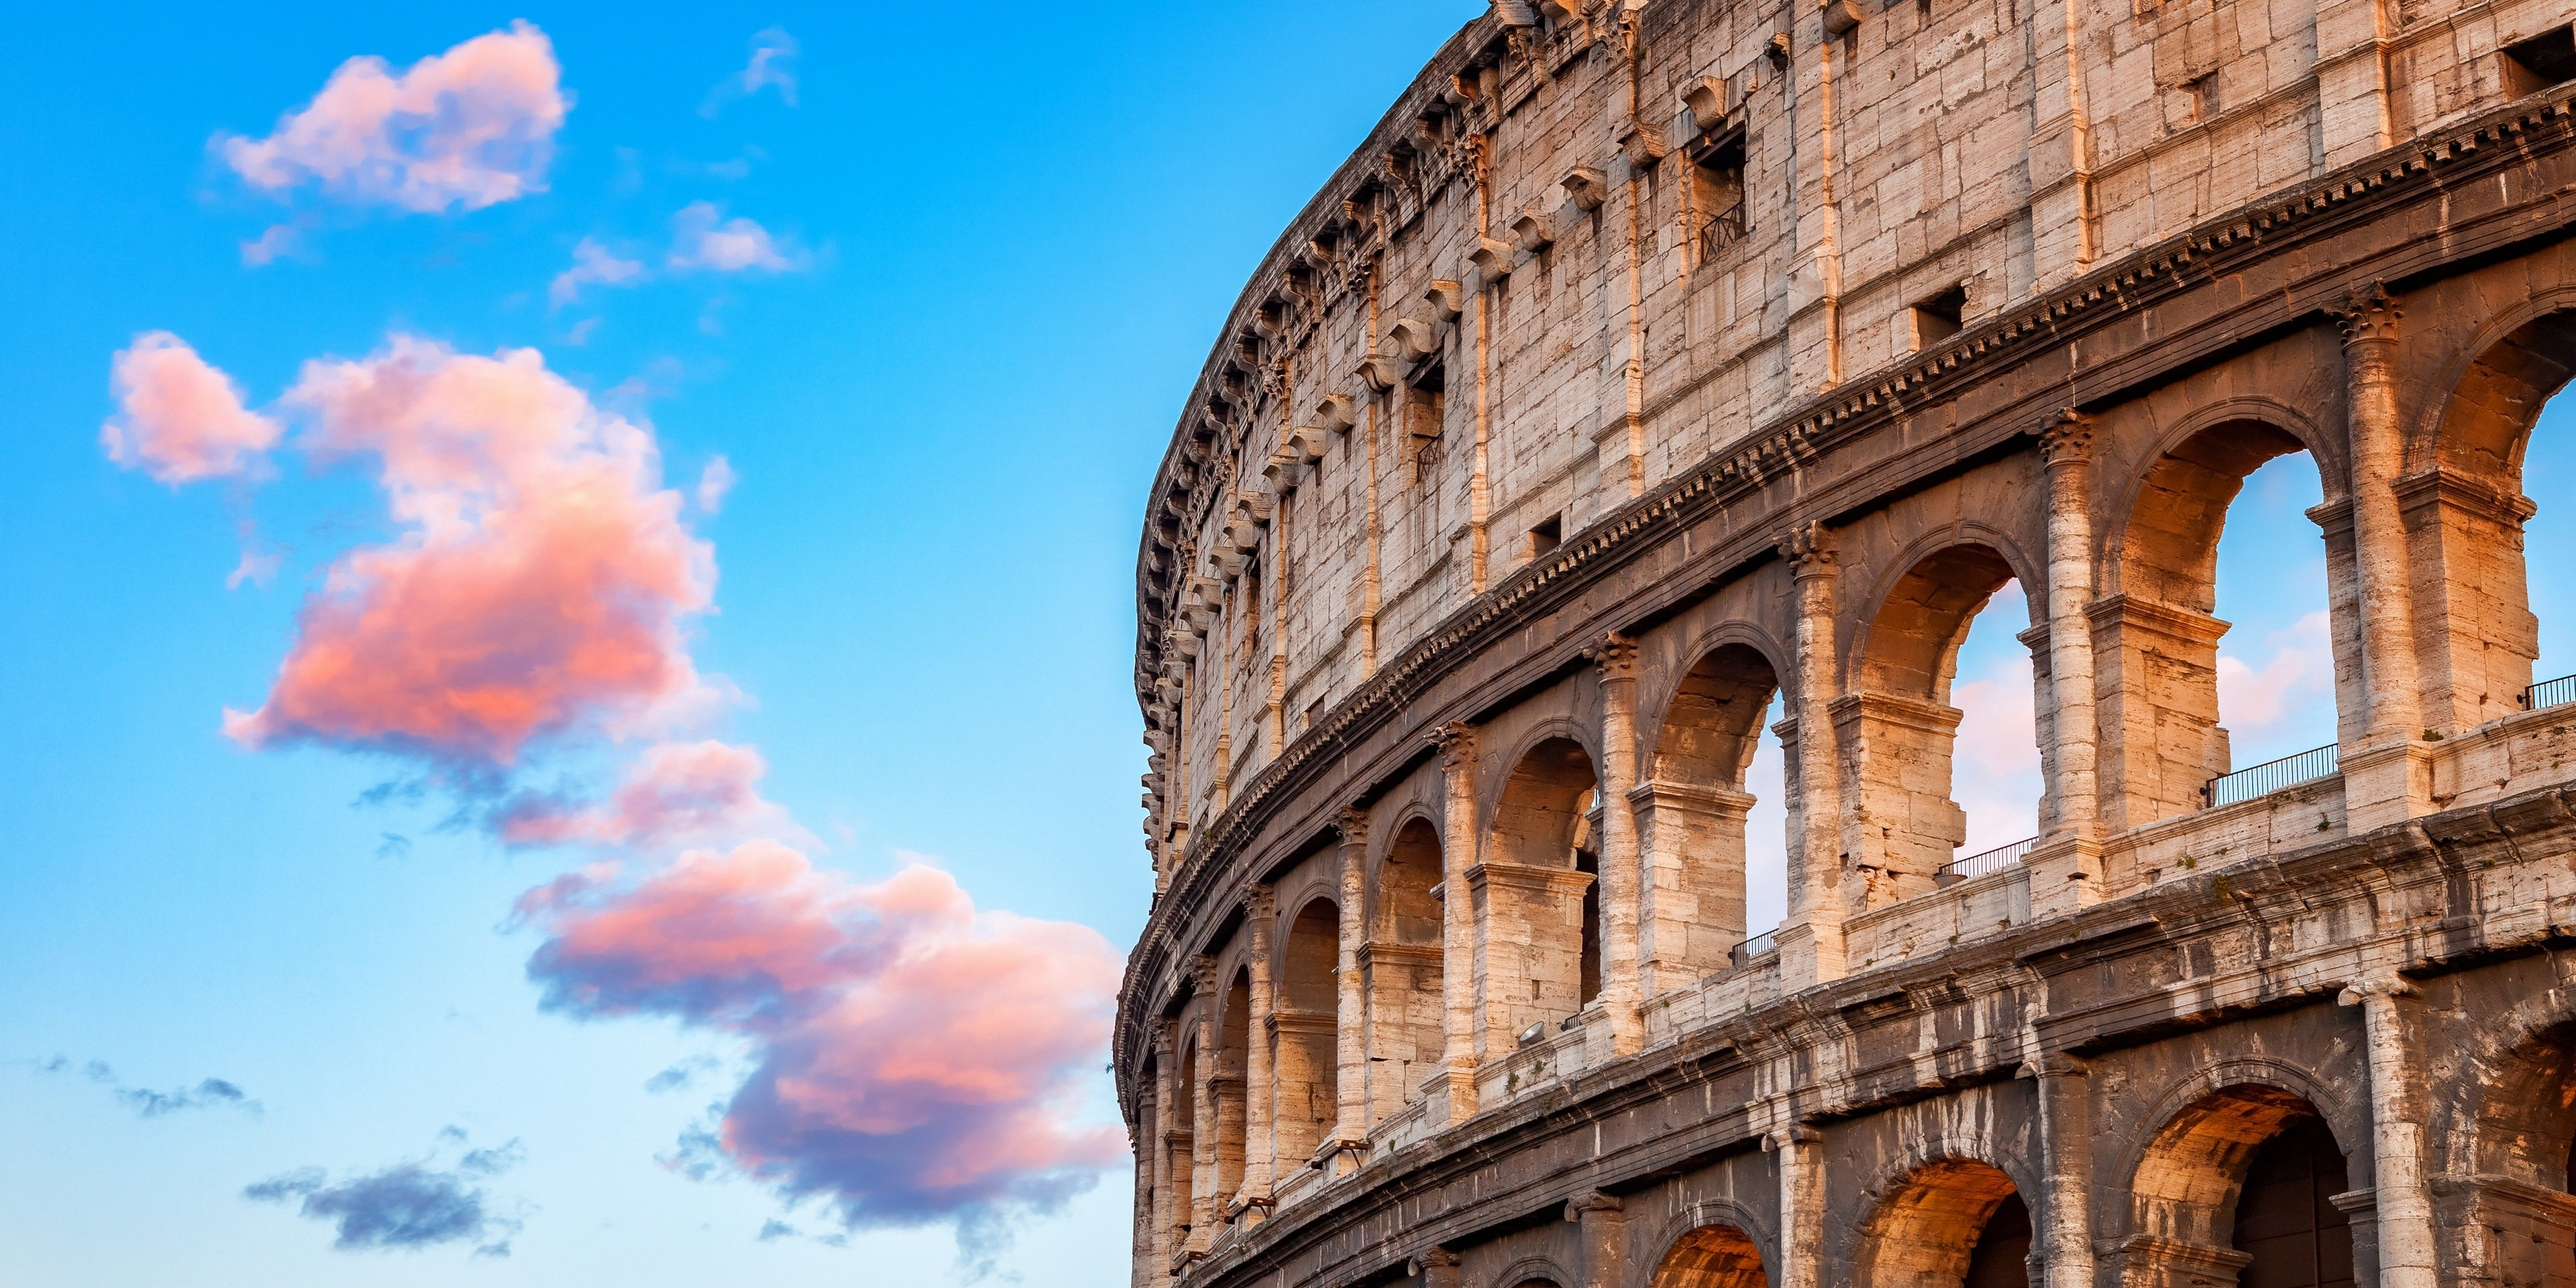 rome wasn't built in a day and neither is a marketing campaign